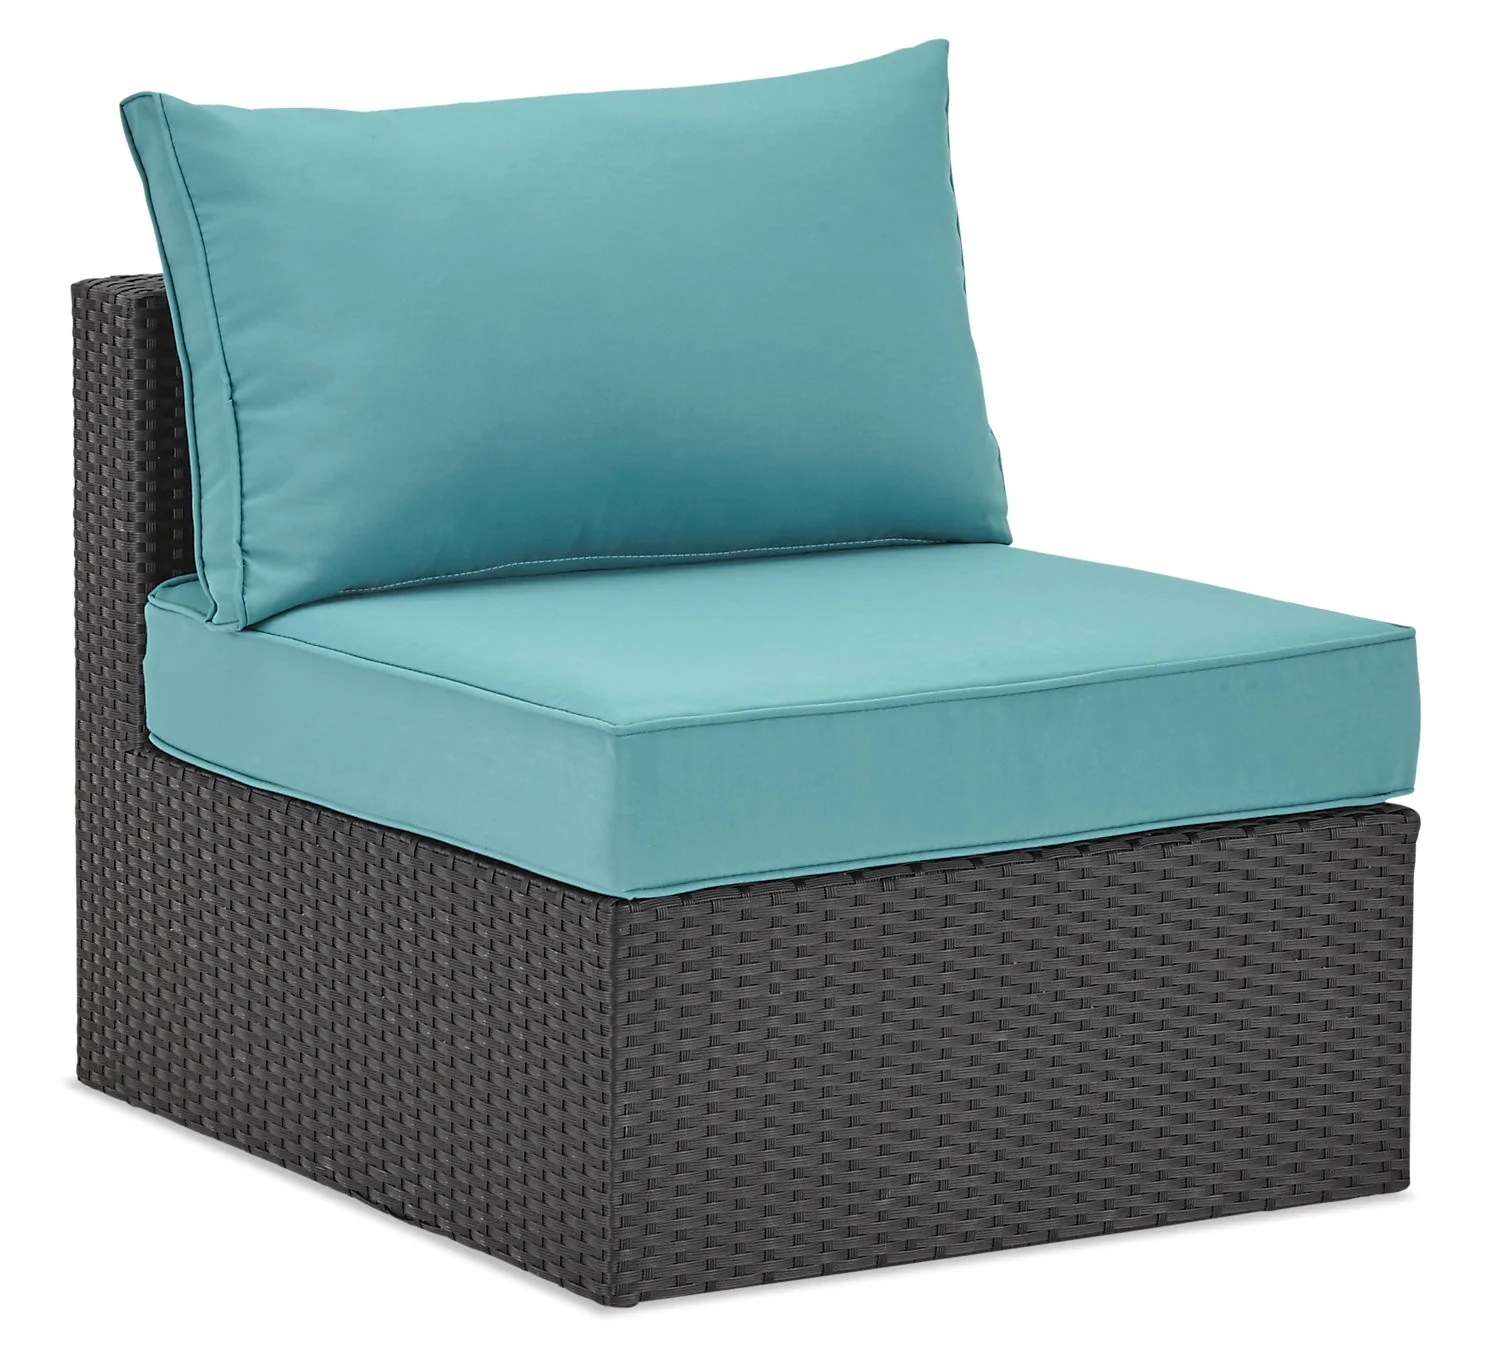 Fauteuil Pour Terrasse Minnesota Armless Patio Chair Blue The Brick